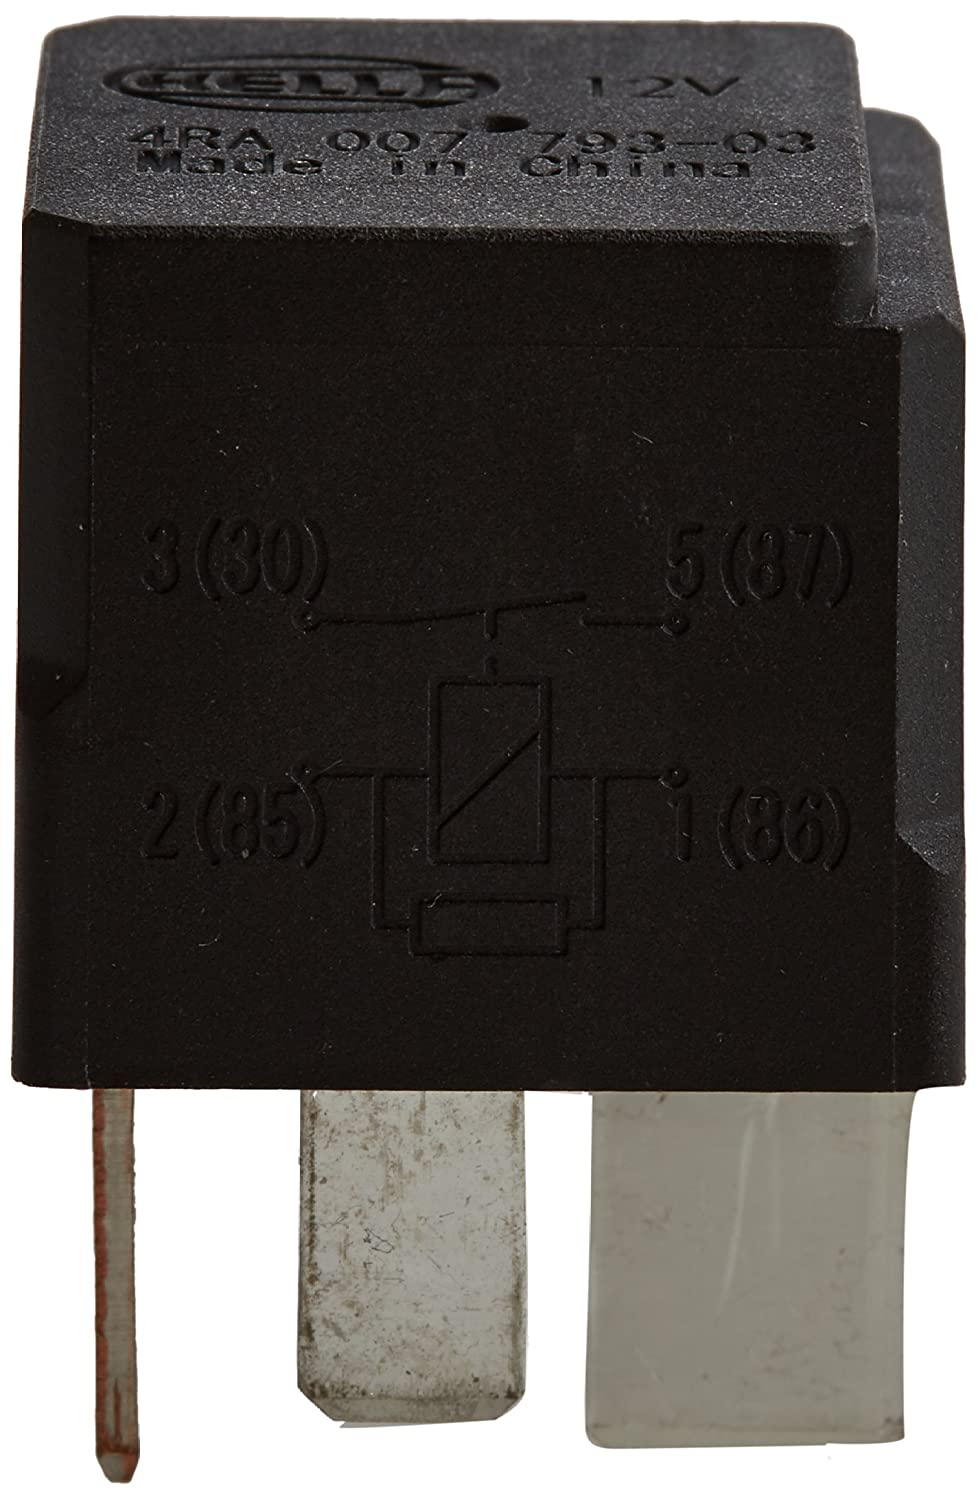 HELLA 4RA 007 793-037 Relay, main current, 12V, with resistance Hella KGaA Hueck & Co.